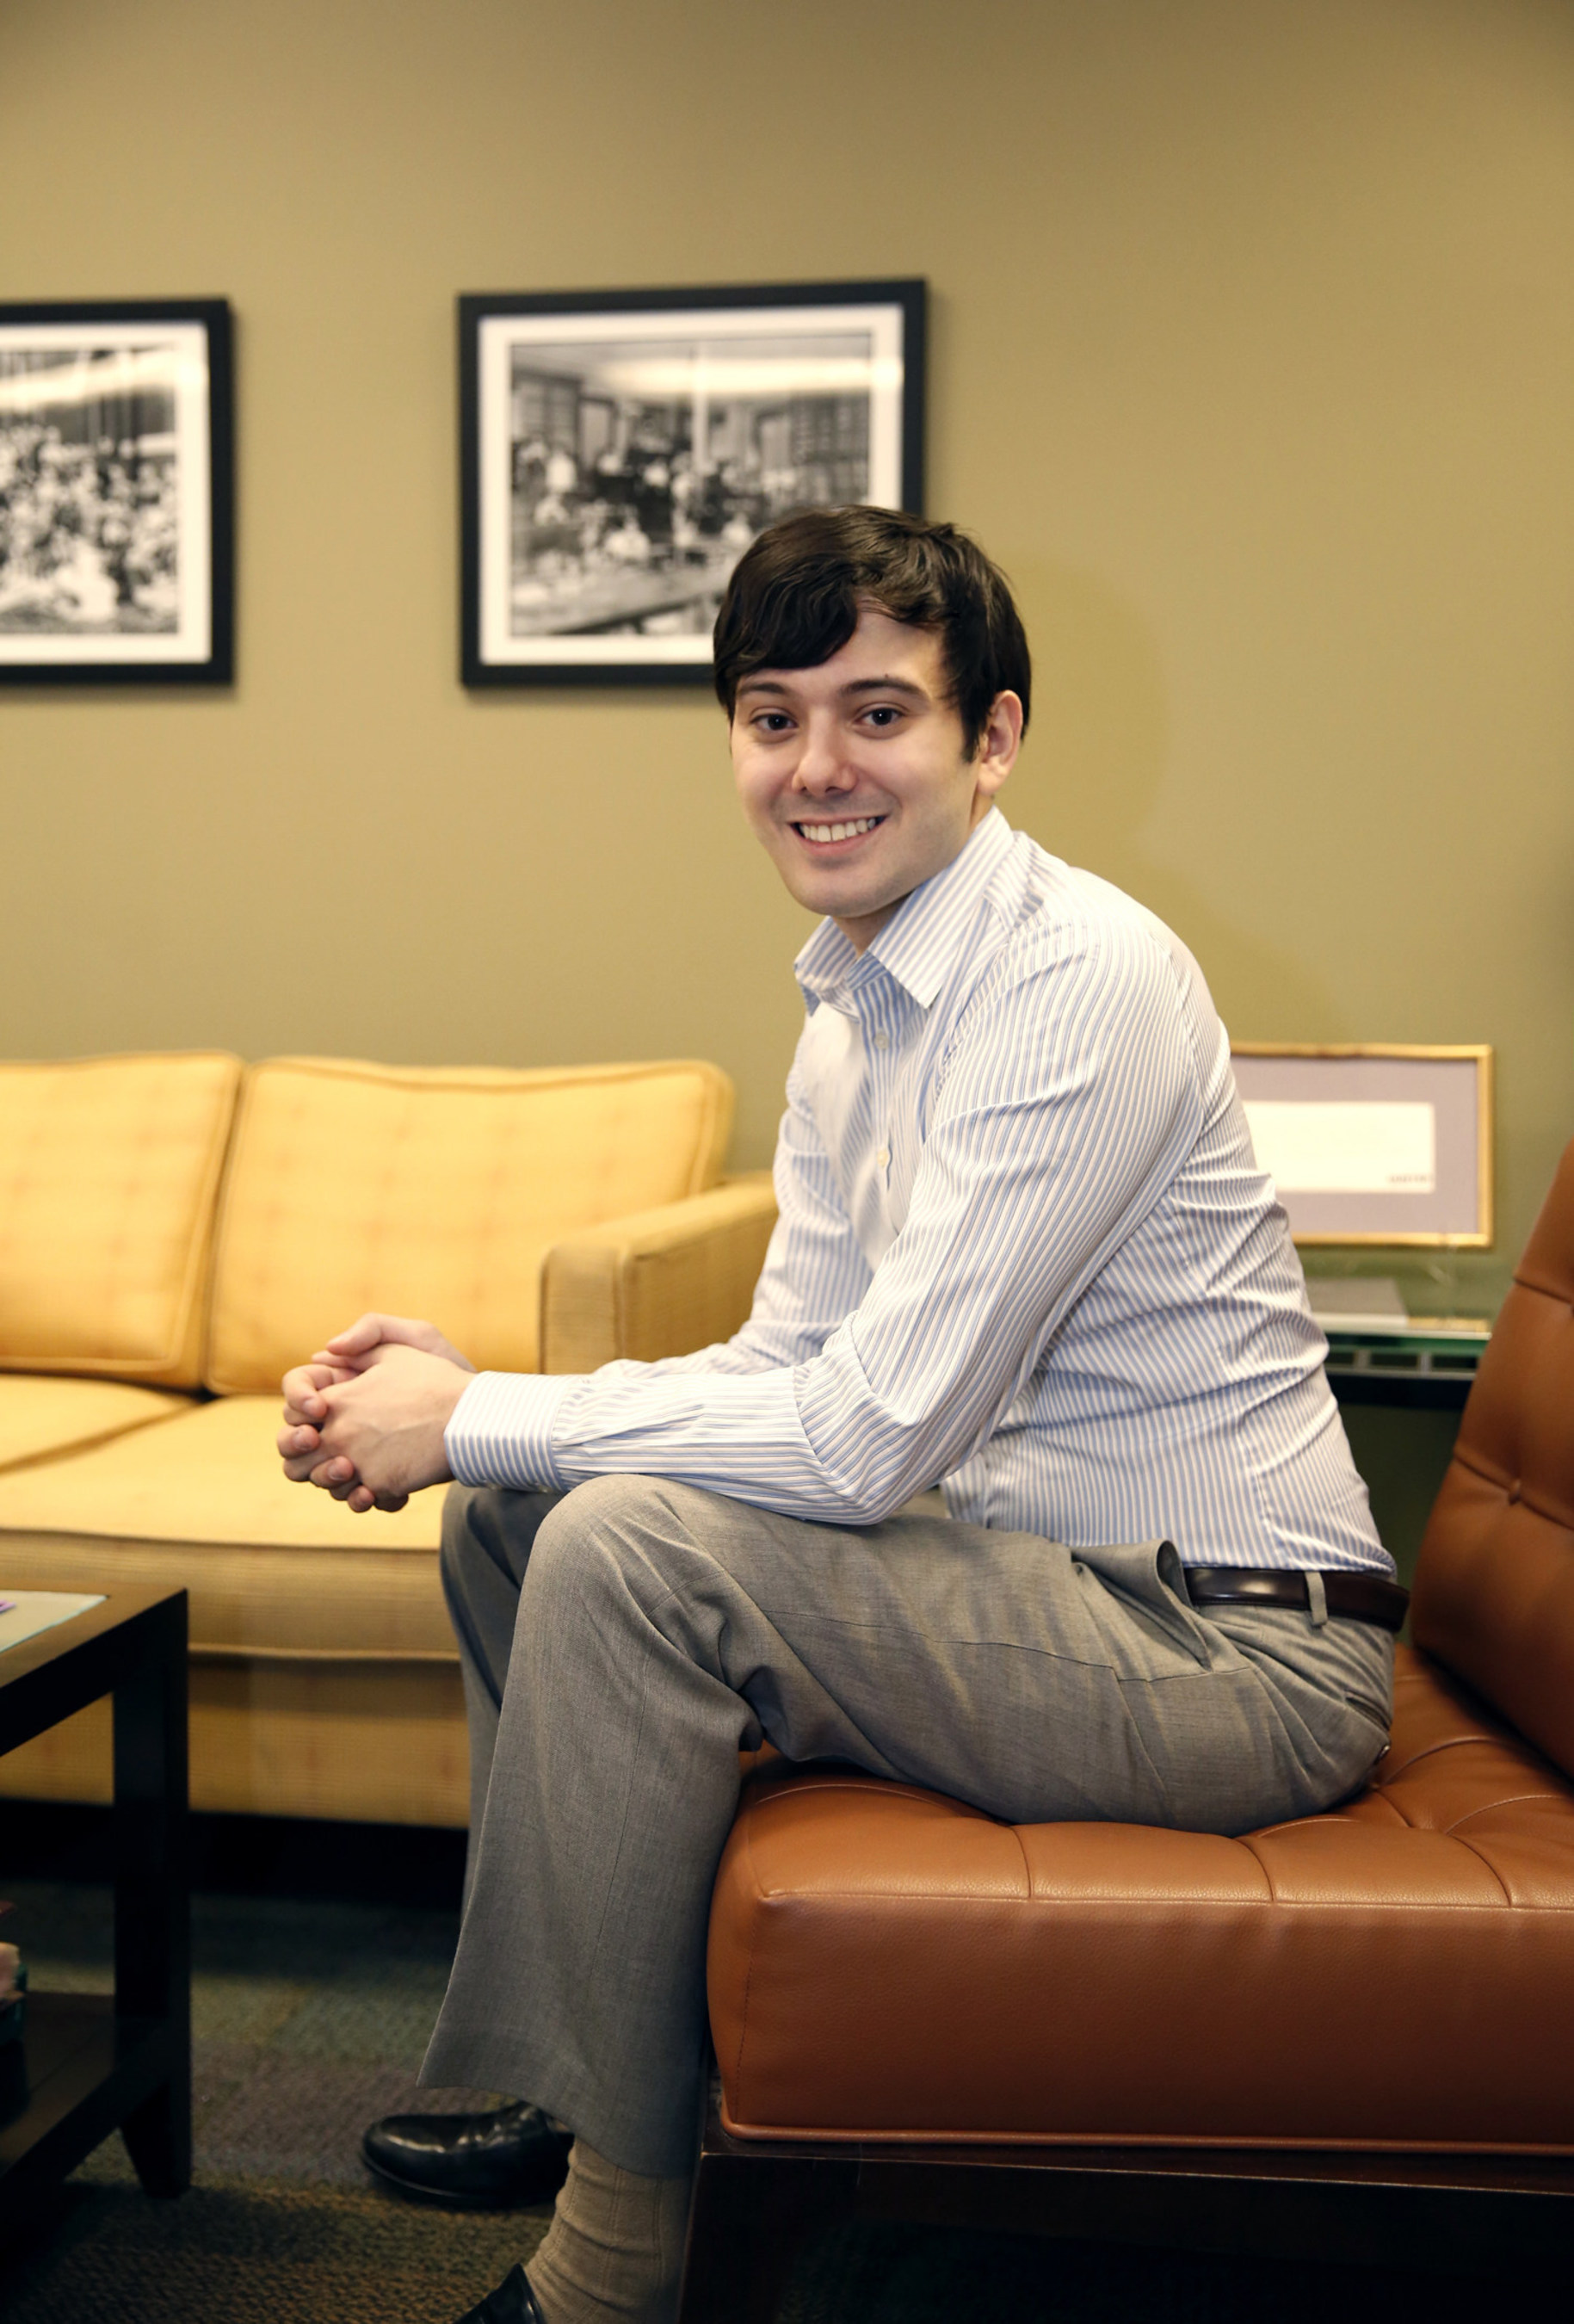 Hunter College High School Receives $1 Million Gift from Pioneering Health Care Executive Martin Shkreli